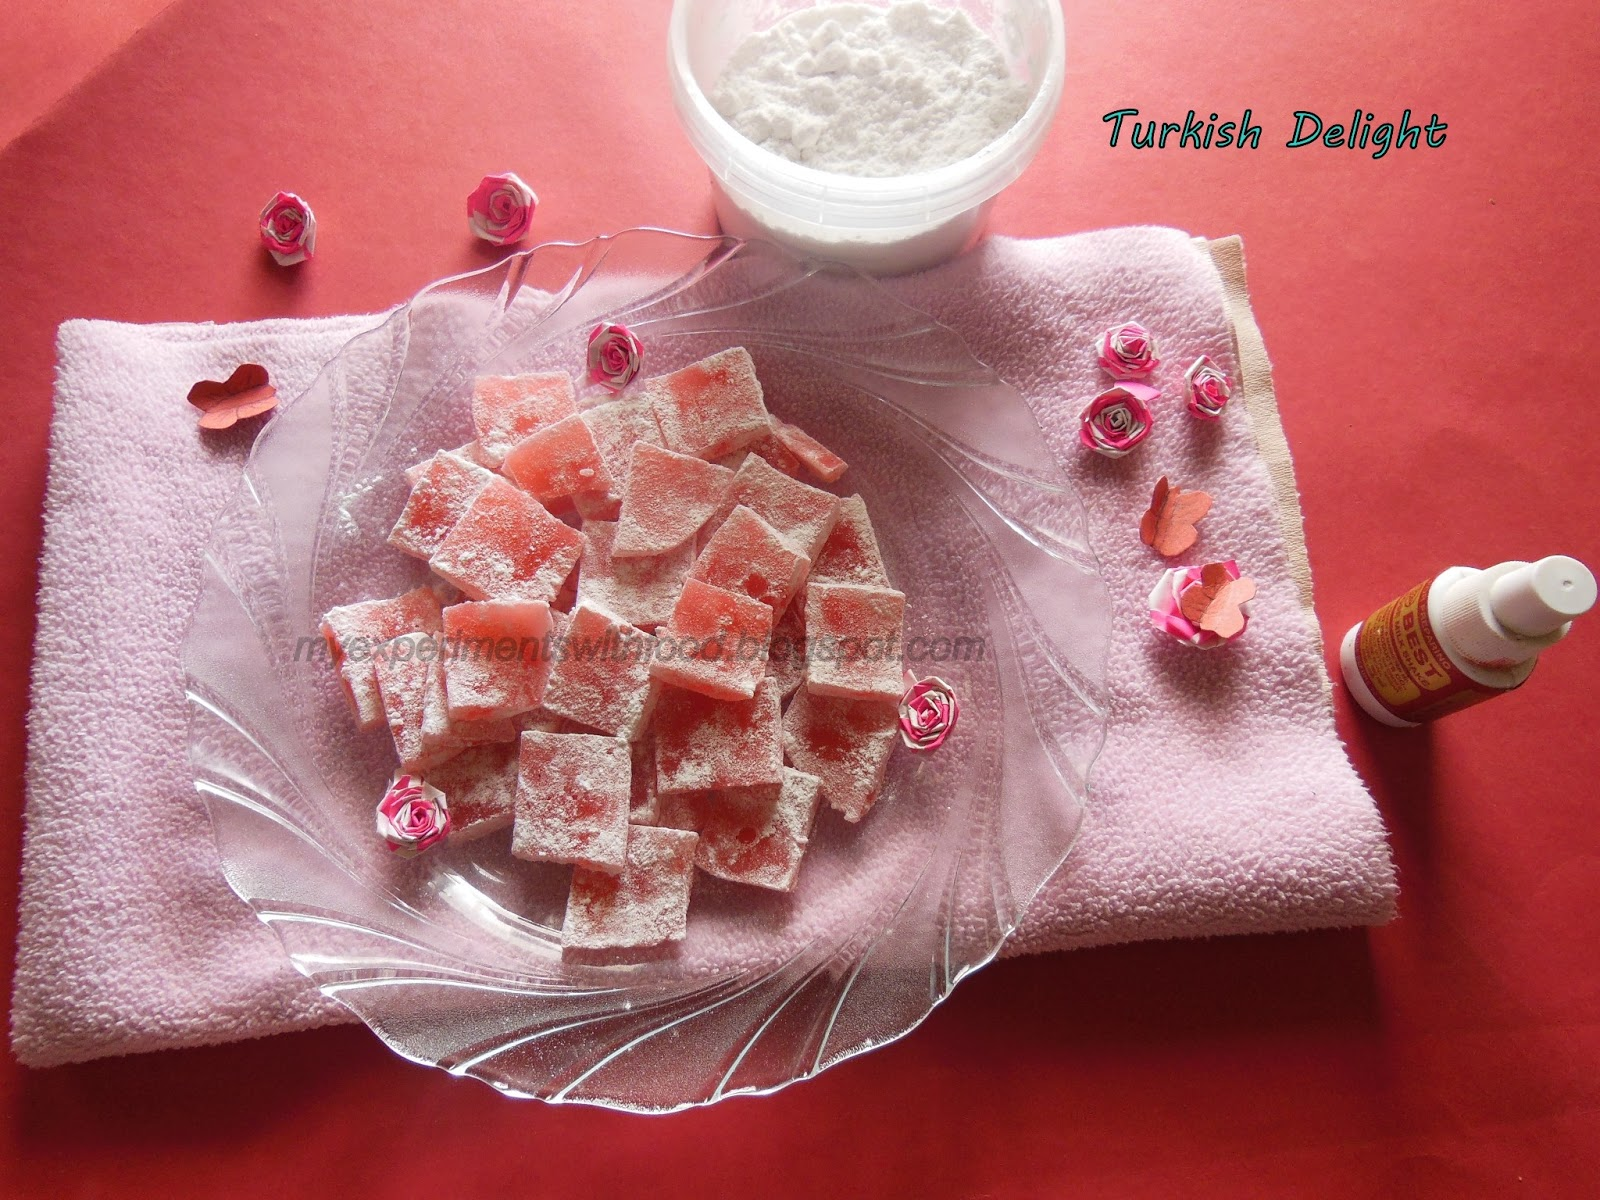 how to make turkish delight without rose water